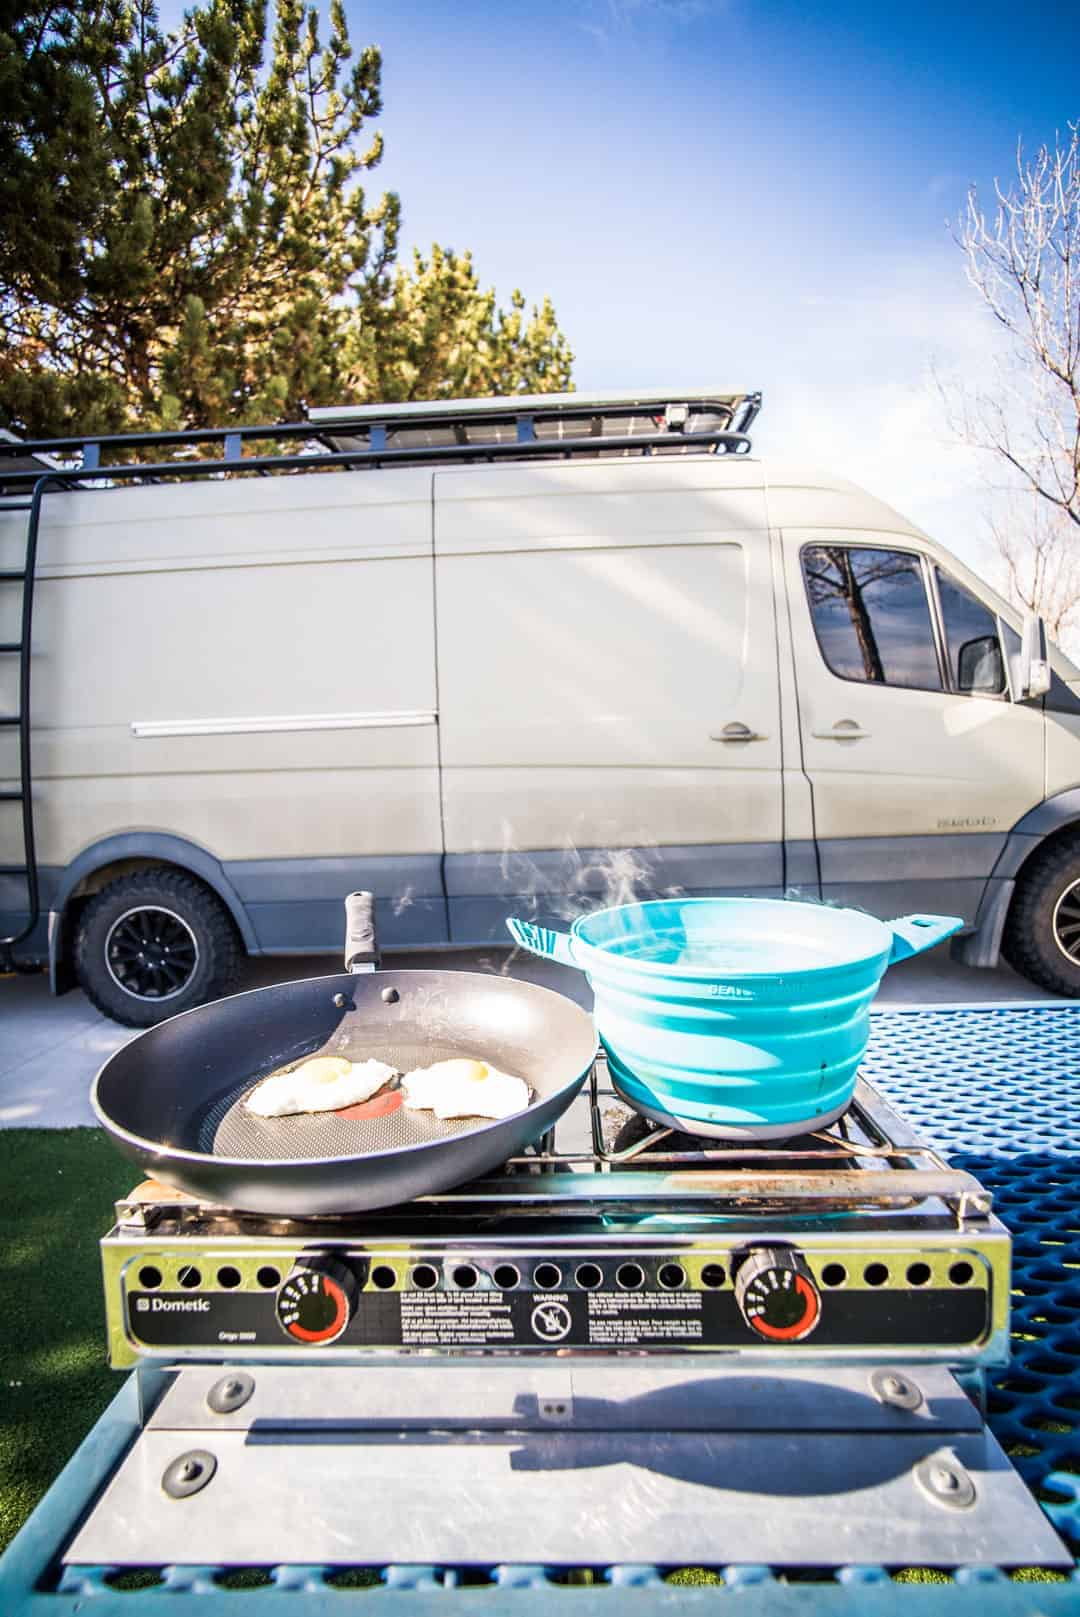 Portable Camp Stove Review - Dometic Origo 3000 Camper Van Alcohol Stove-4